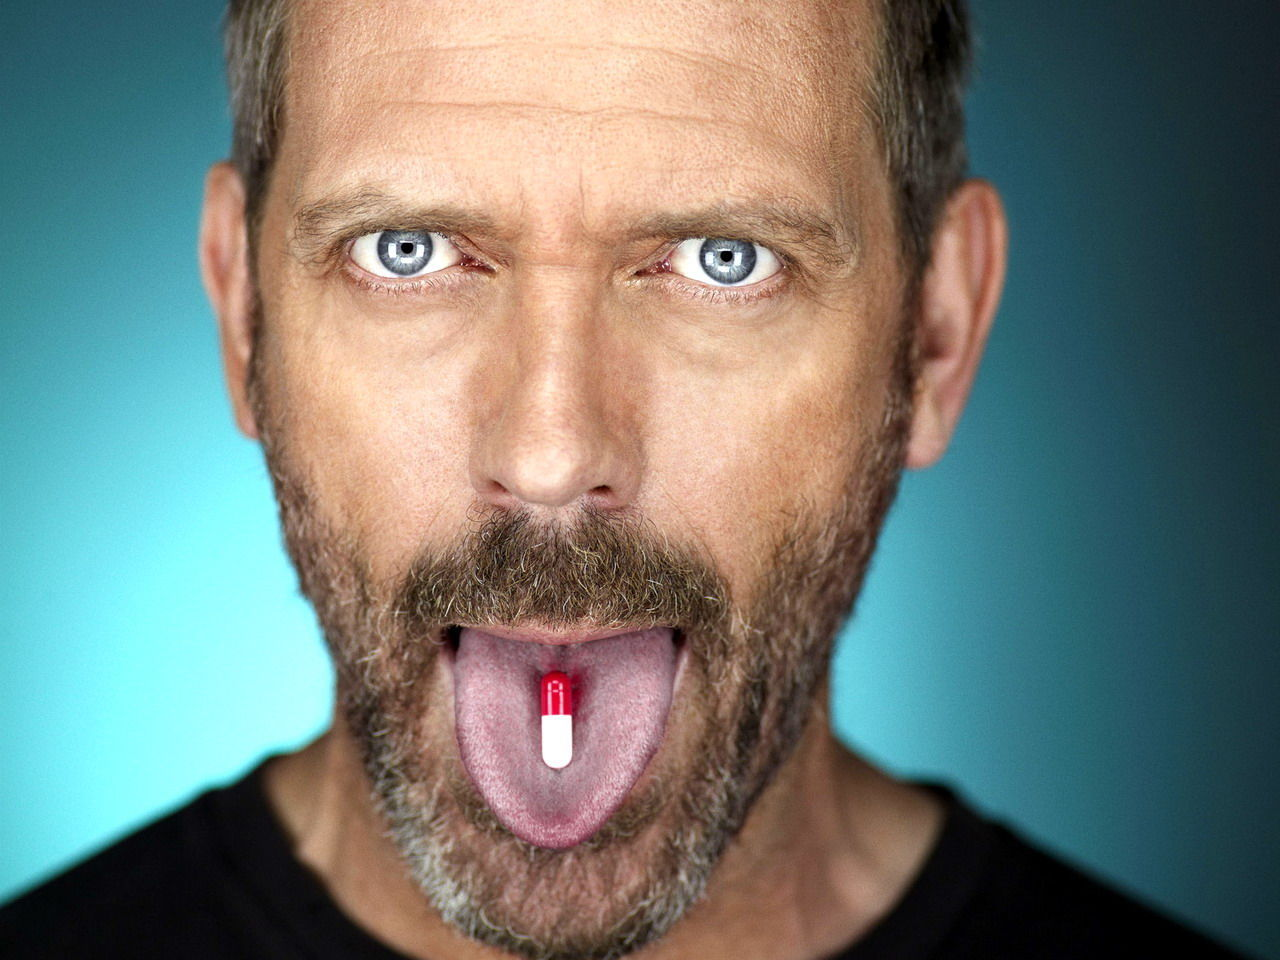 Una sencilla ¿Qué actor interpreta a Gregory House?